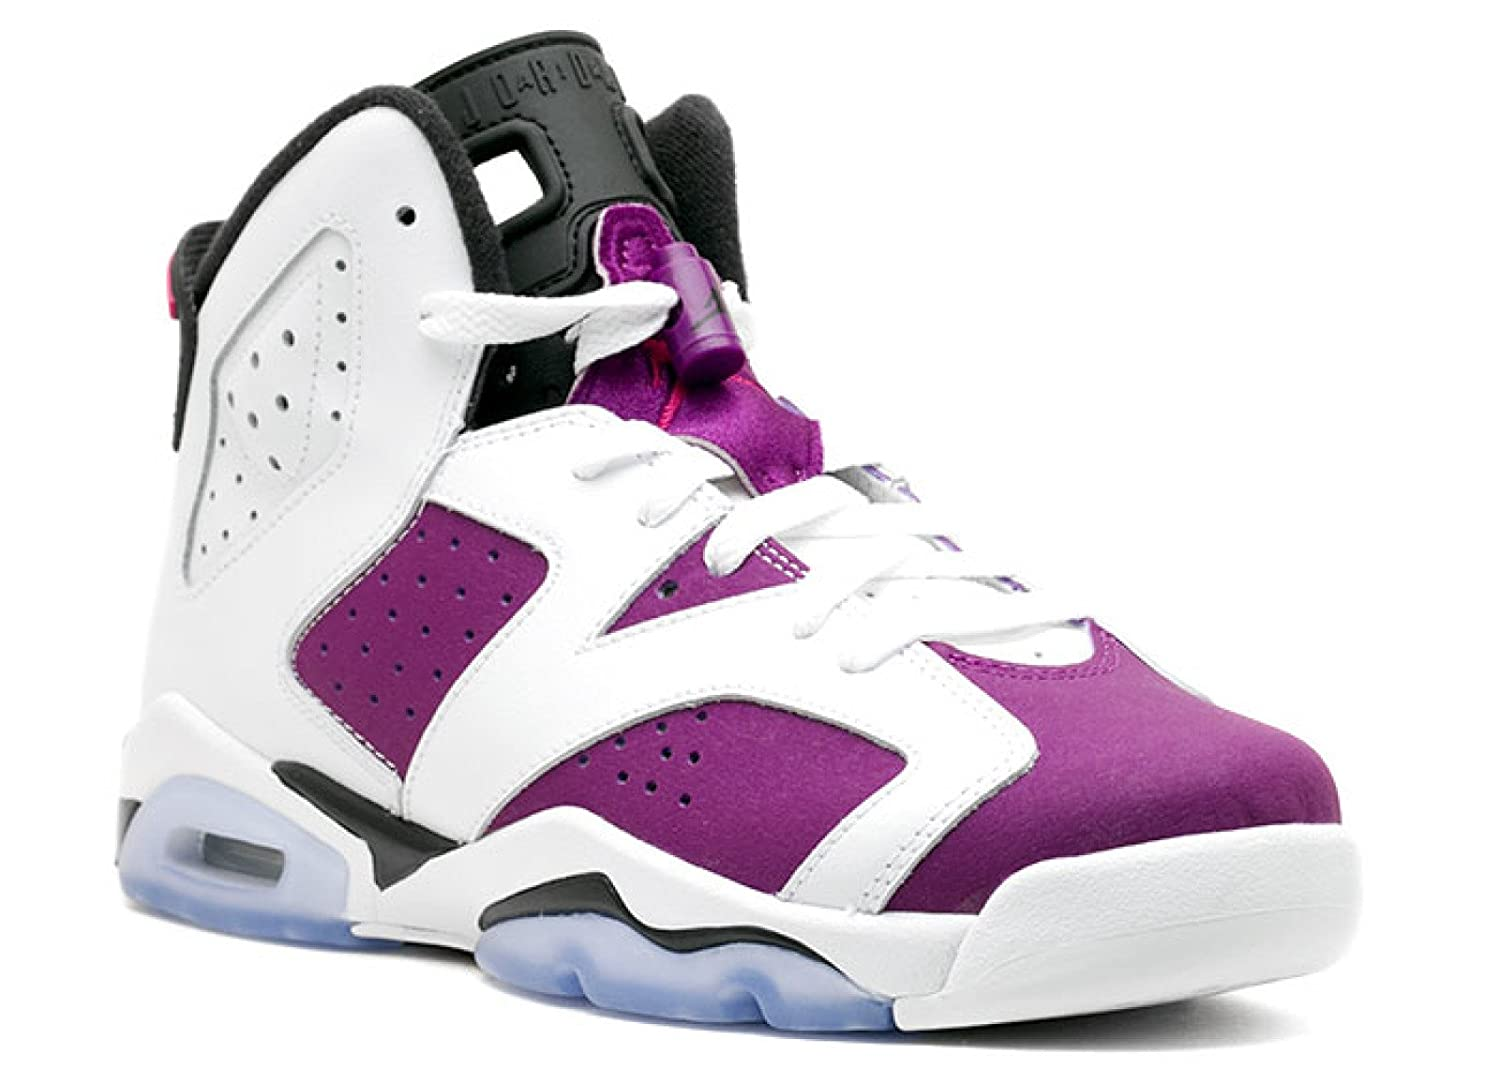 best website e96fa 5fd3d Amazon.com   Jordan Gradeschool Girls Retro 6 (Gs) WHITE BRIGHT  GRAPE BLACK VIVID PINK 543390-127 6   Fashion Sneakers